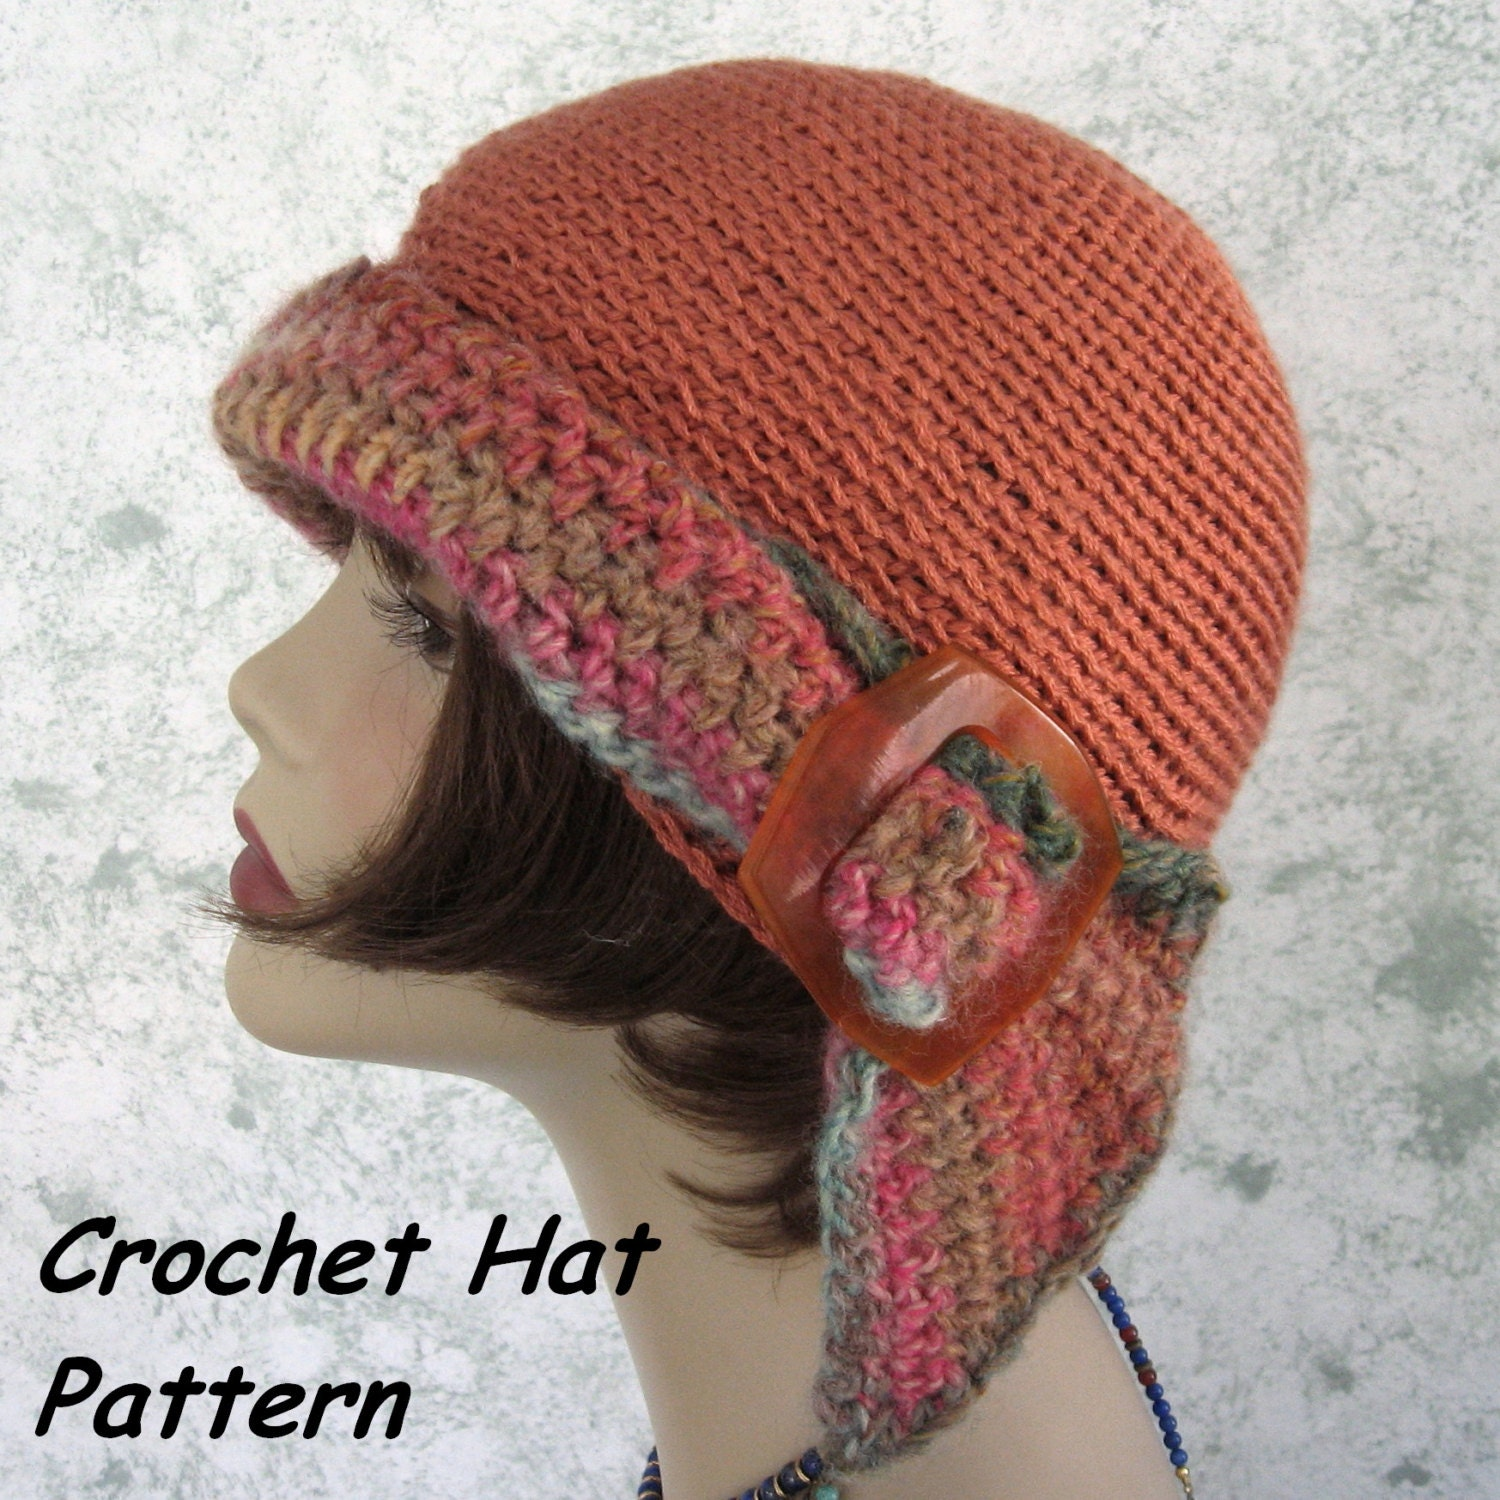 Crochet Womens Hat : Womens Crochet HAT PATTERN Versatile Flapper Girl 3 Ways To Wear PDF ...